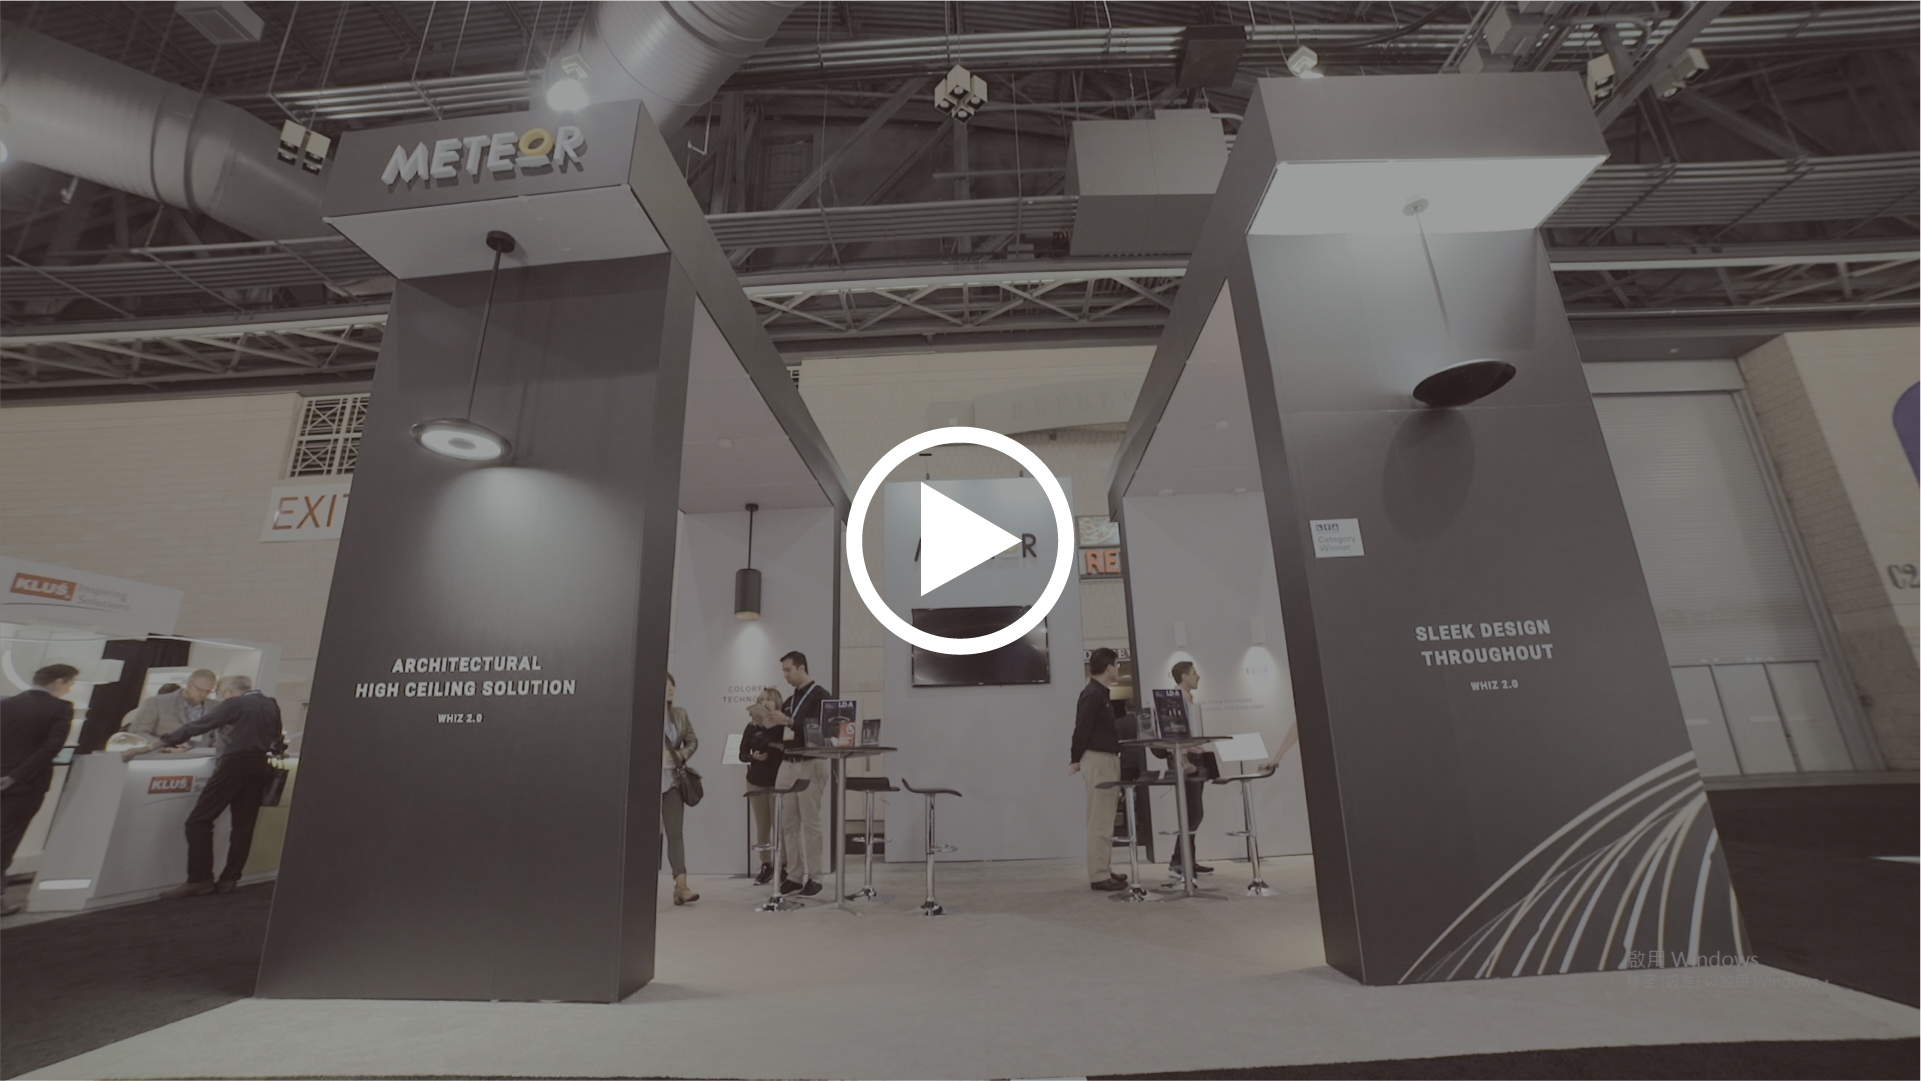 Meteor Lighting at Lightfair 2019